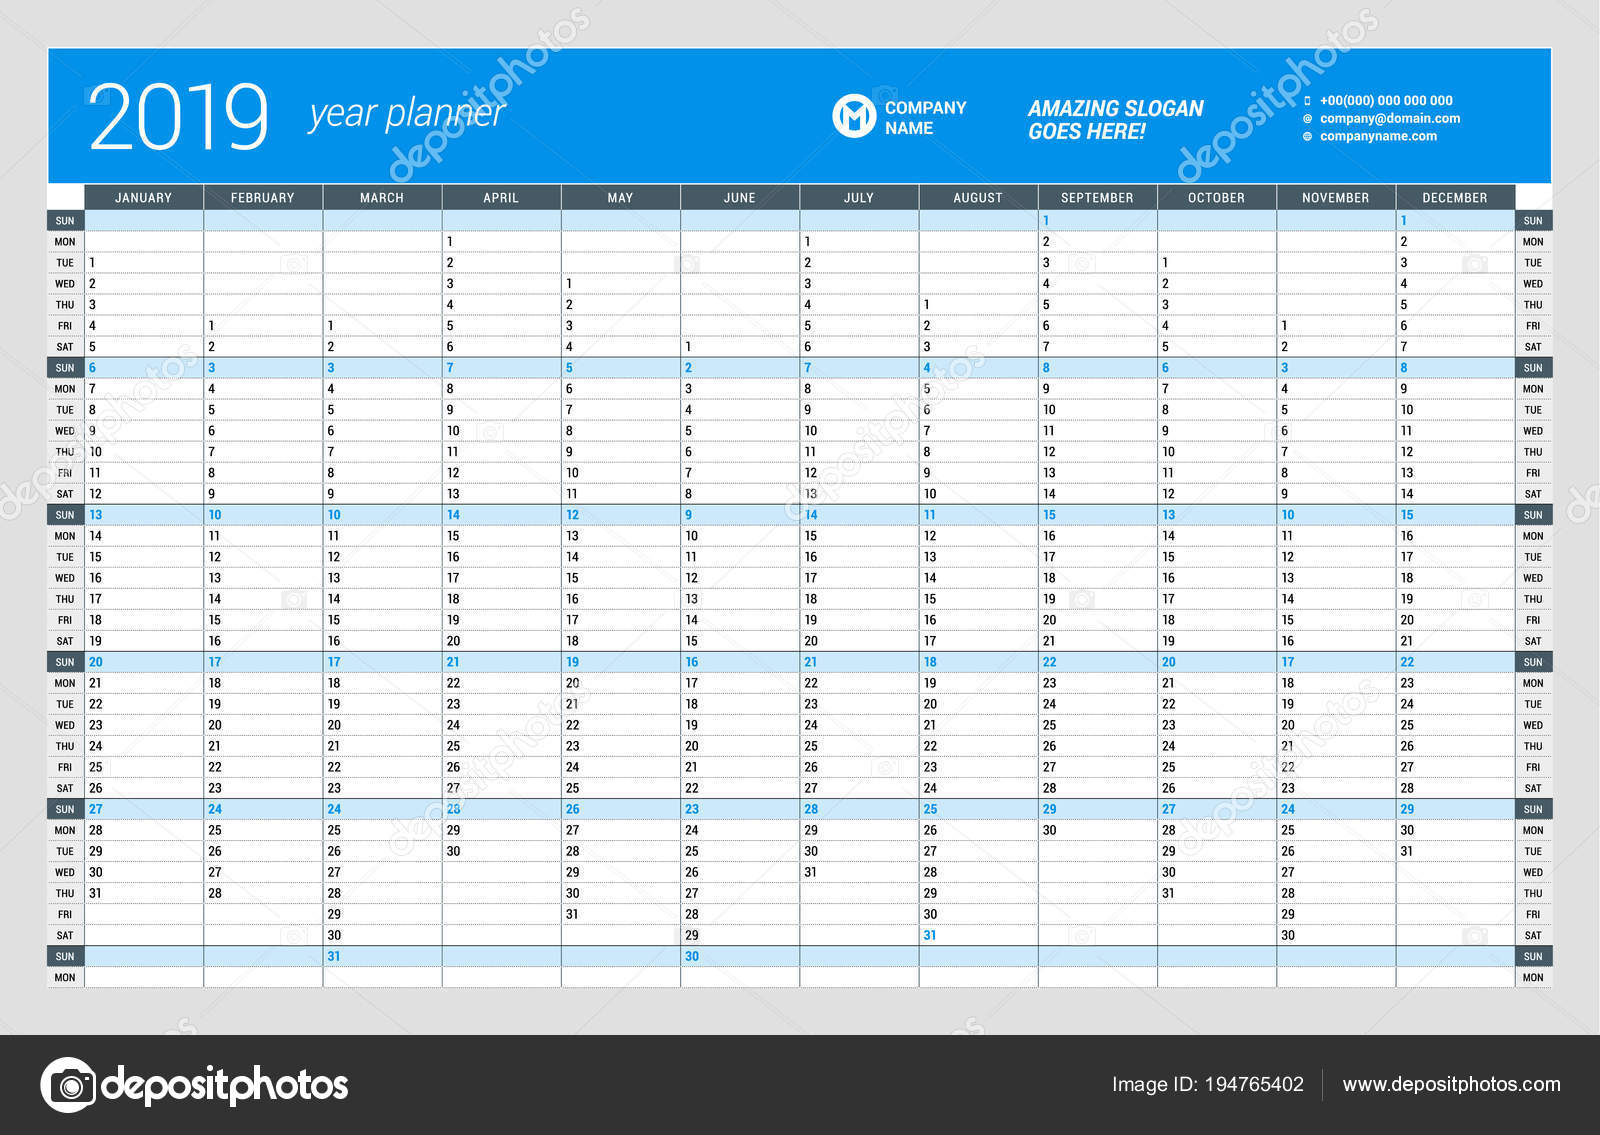 2019 Year Planner Calendar With Yearly Wall Template For Vector Design